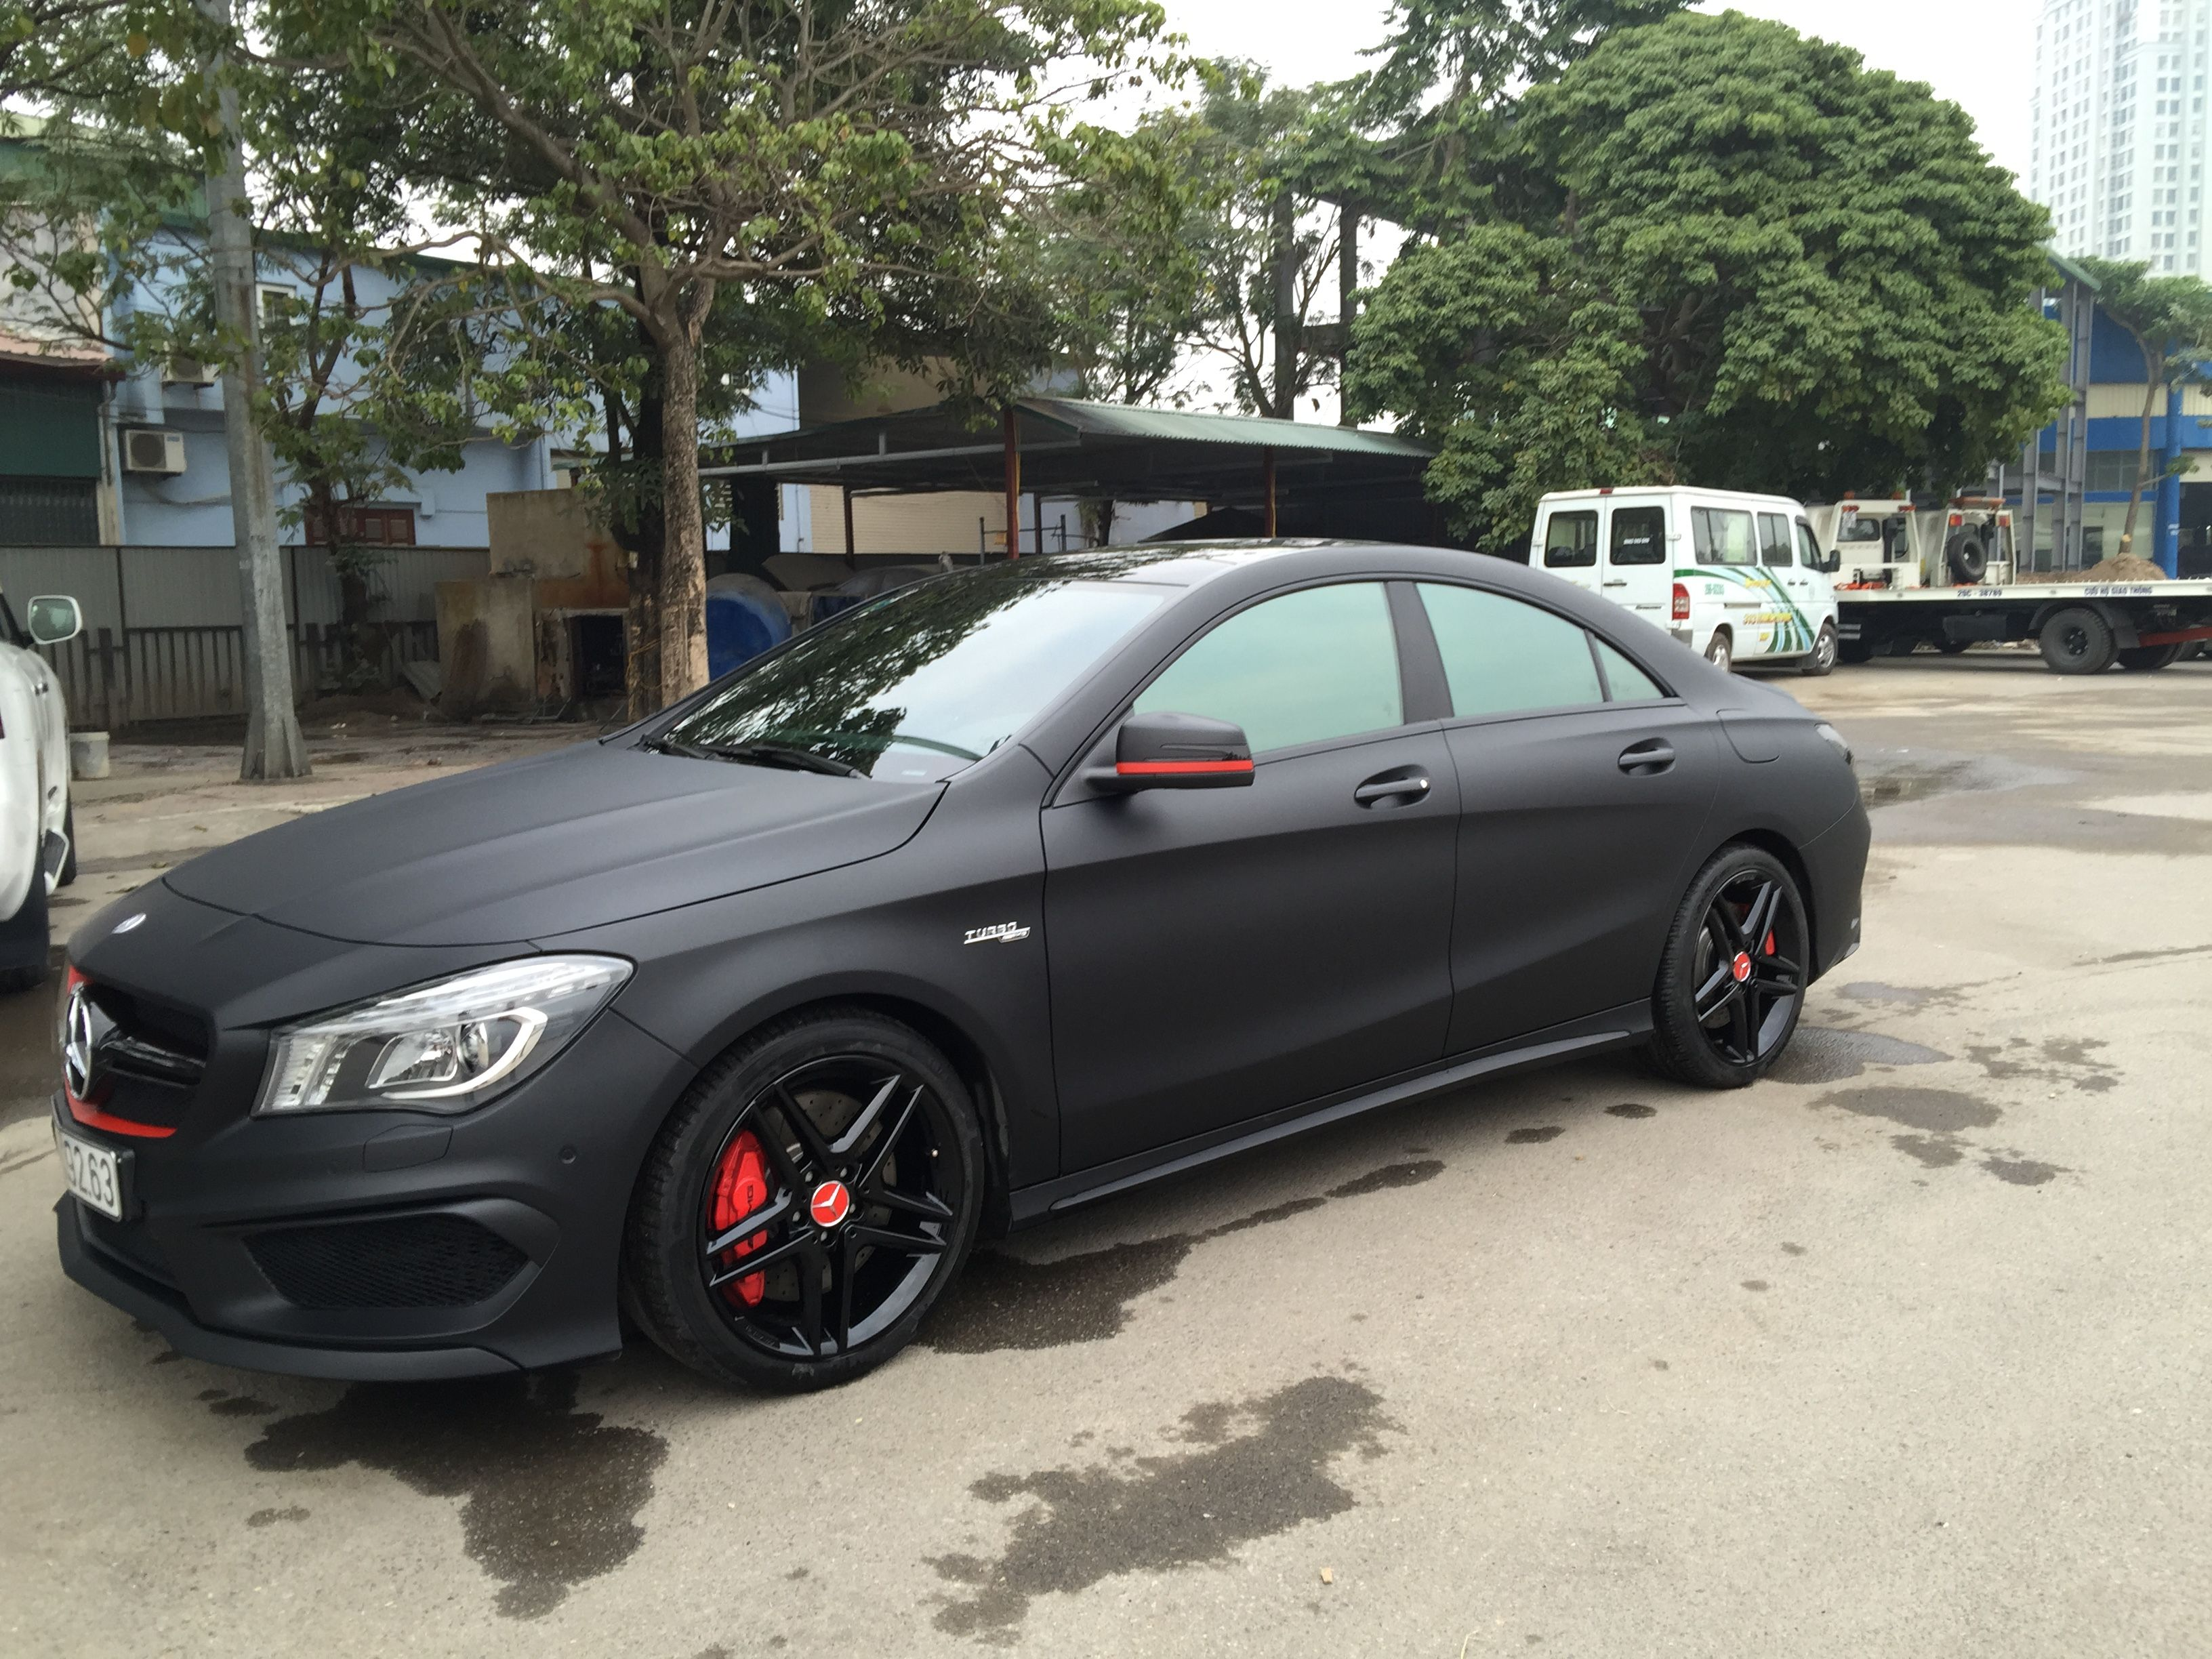 Matt Black Mercedes Cla 250 Dream Cars Amg